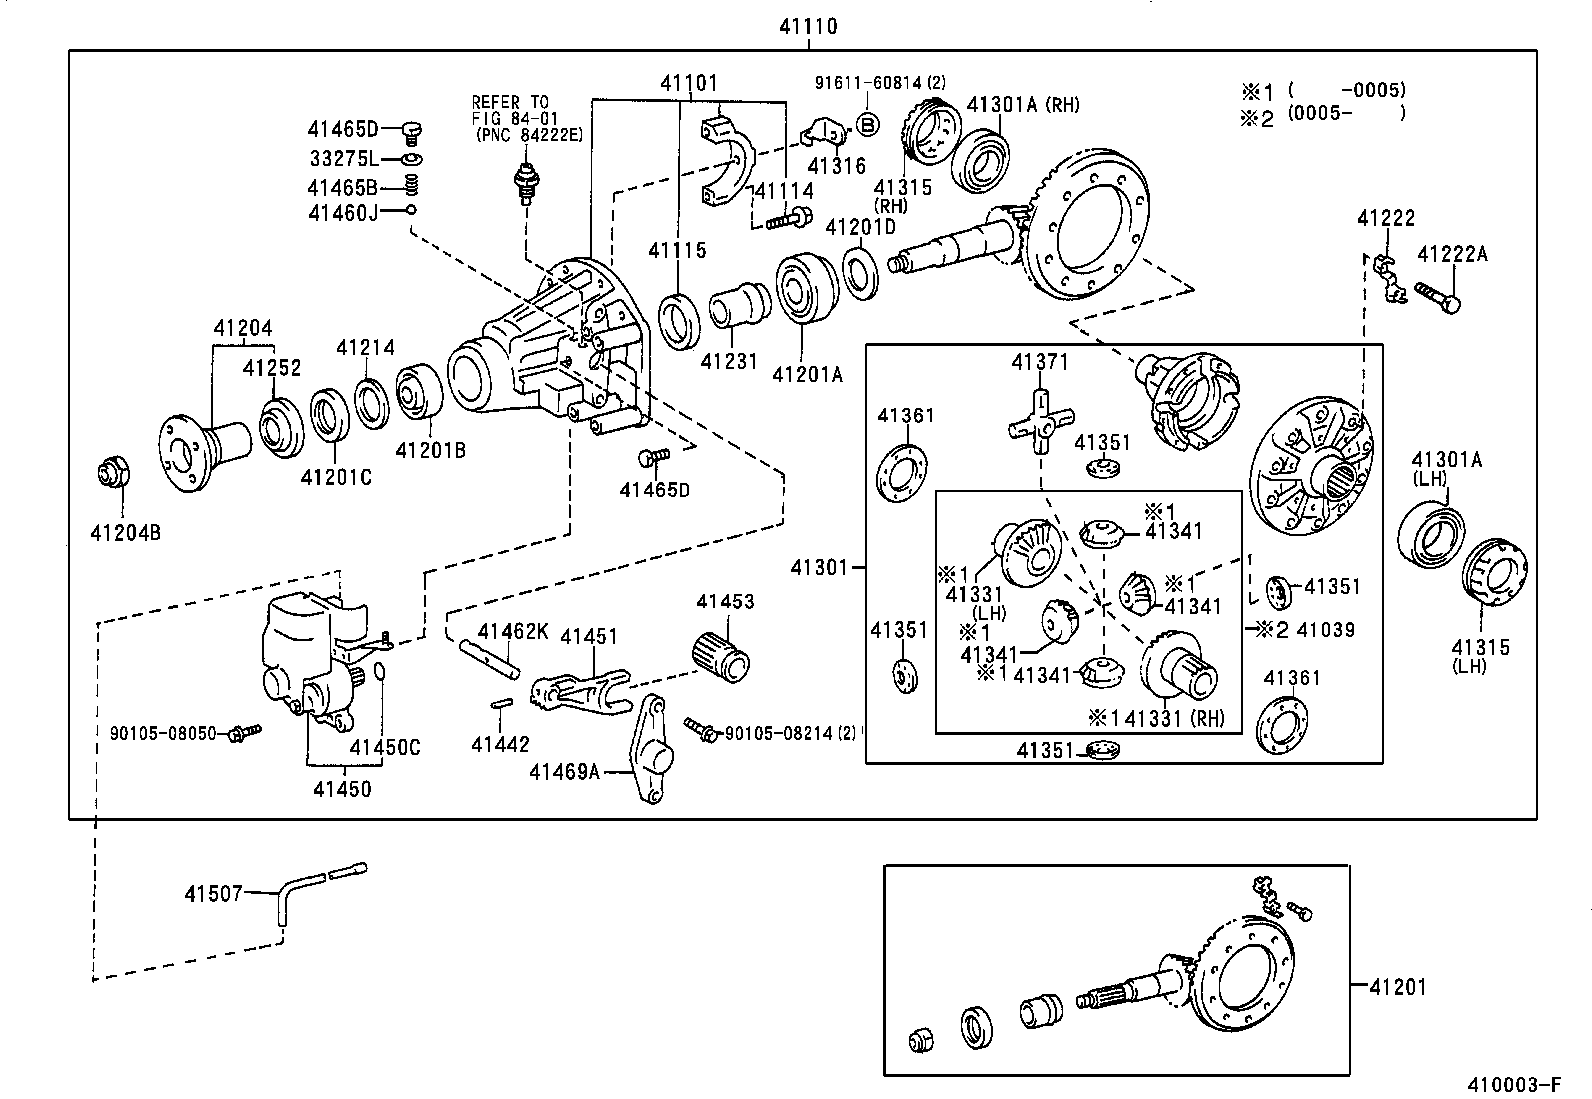 Service manual [1997 Toyota Land Cruiser Rear Differential